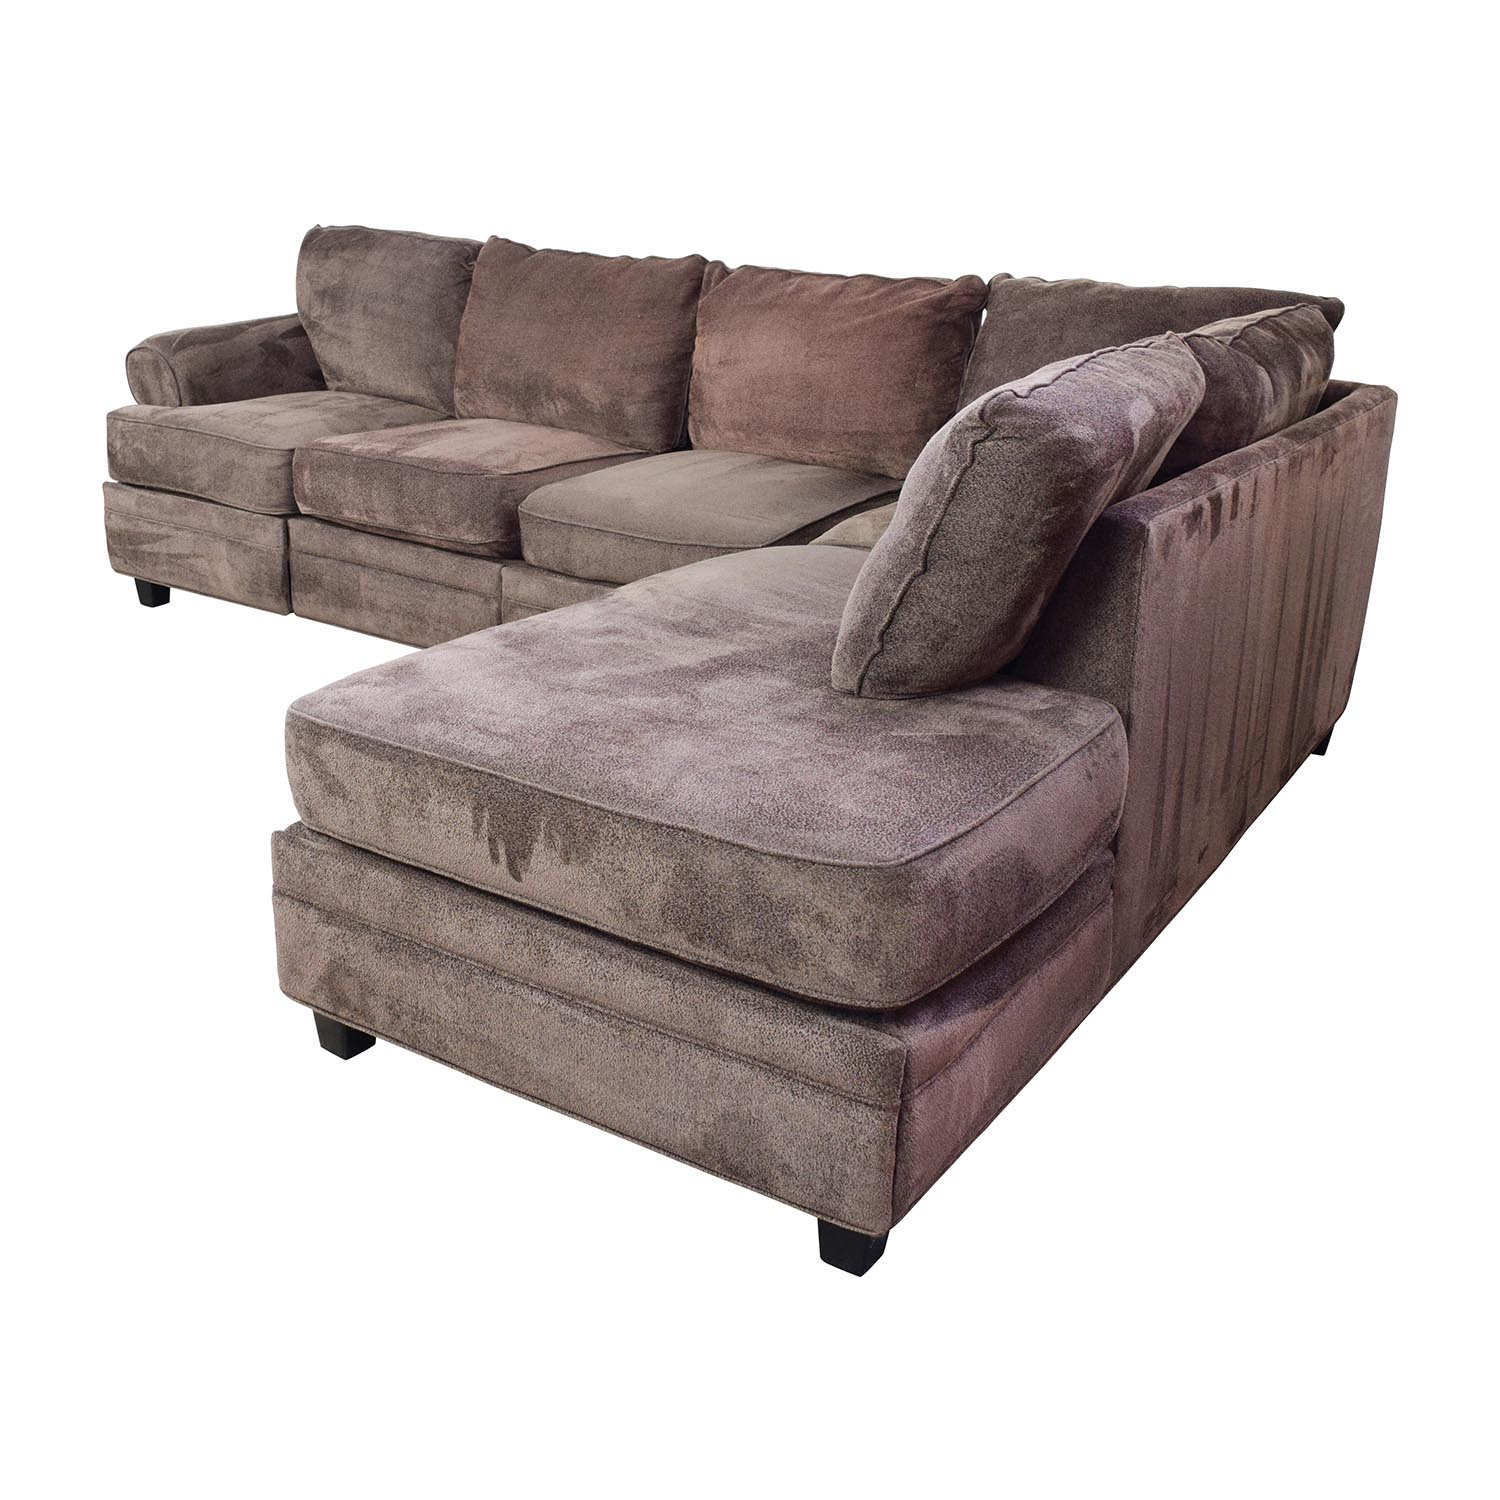 55 Off Bob S Furniture Bob S Furniture Brown Sectional